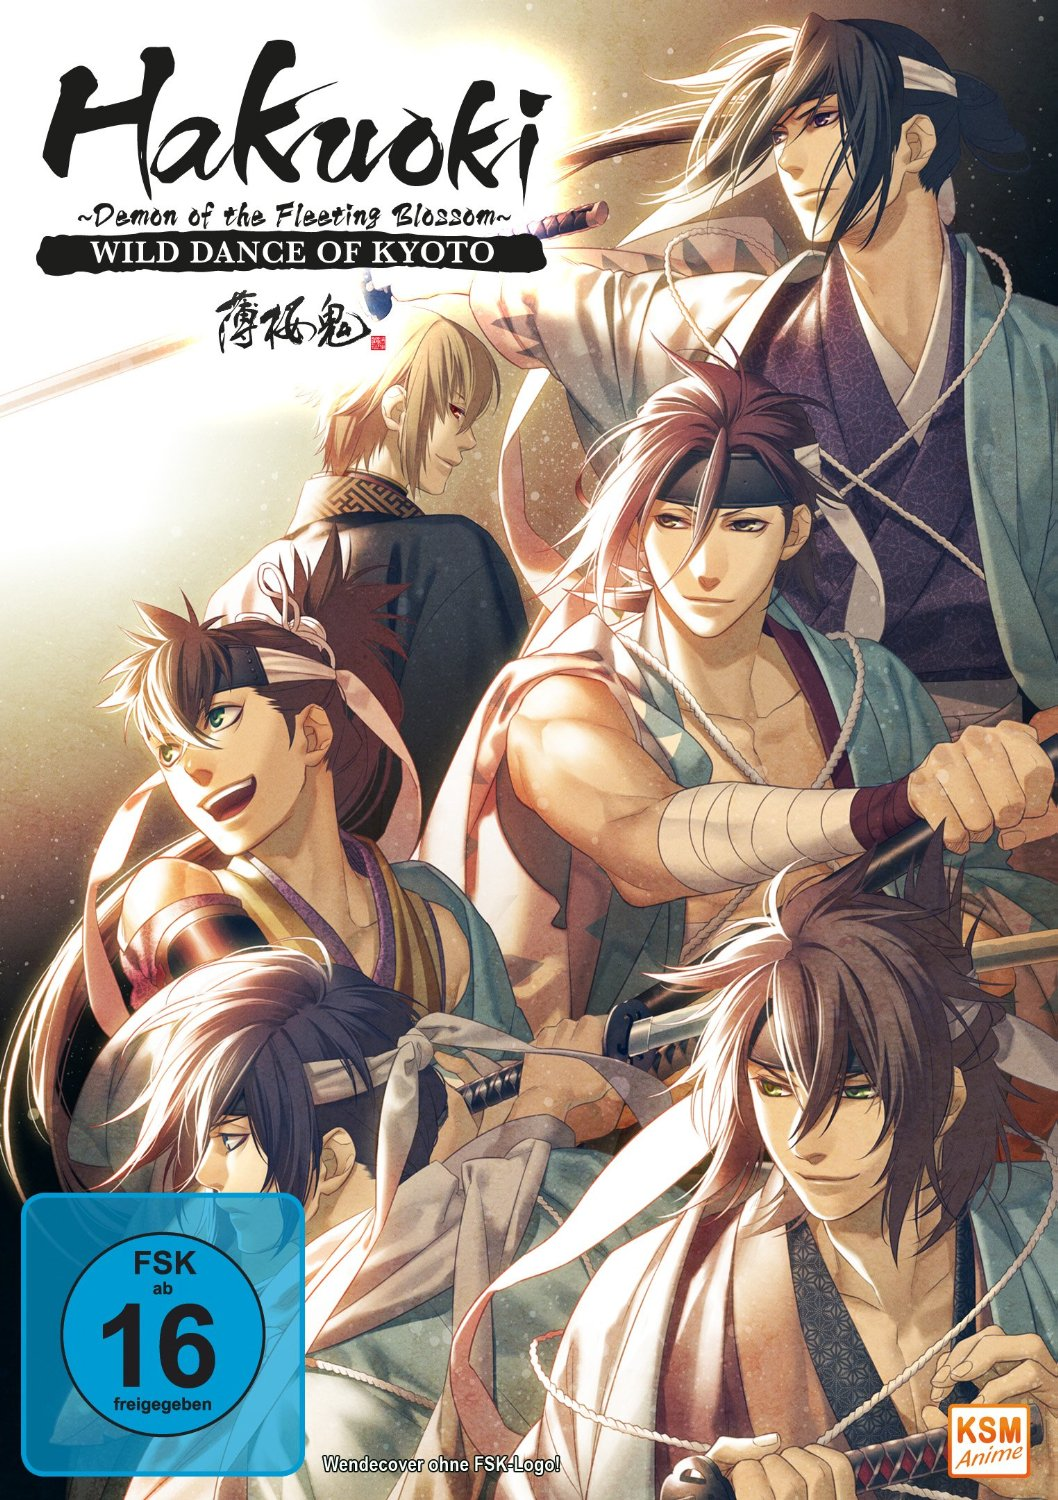 Hakuoki The Movie vorab auf iTunes